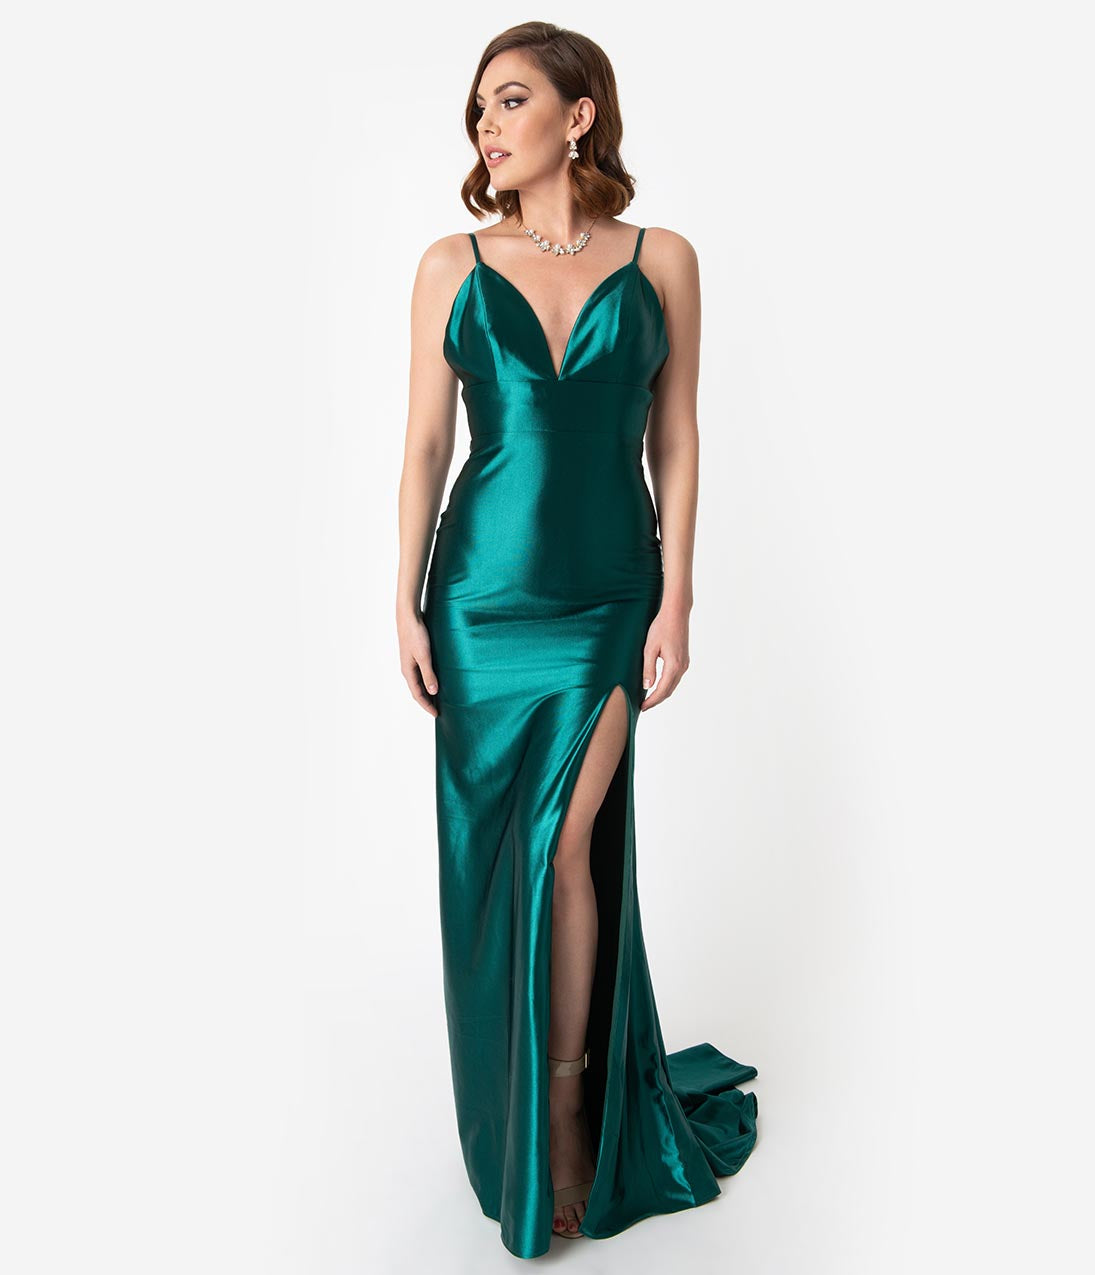 Vintage Evening Dresses and Formal Evening Gowns Emerald Green Satin Fitted Sexy Sleeveless Long Dress $174.00 AT vintagedancer.com